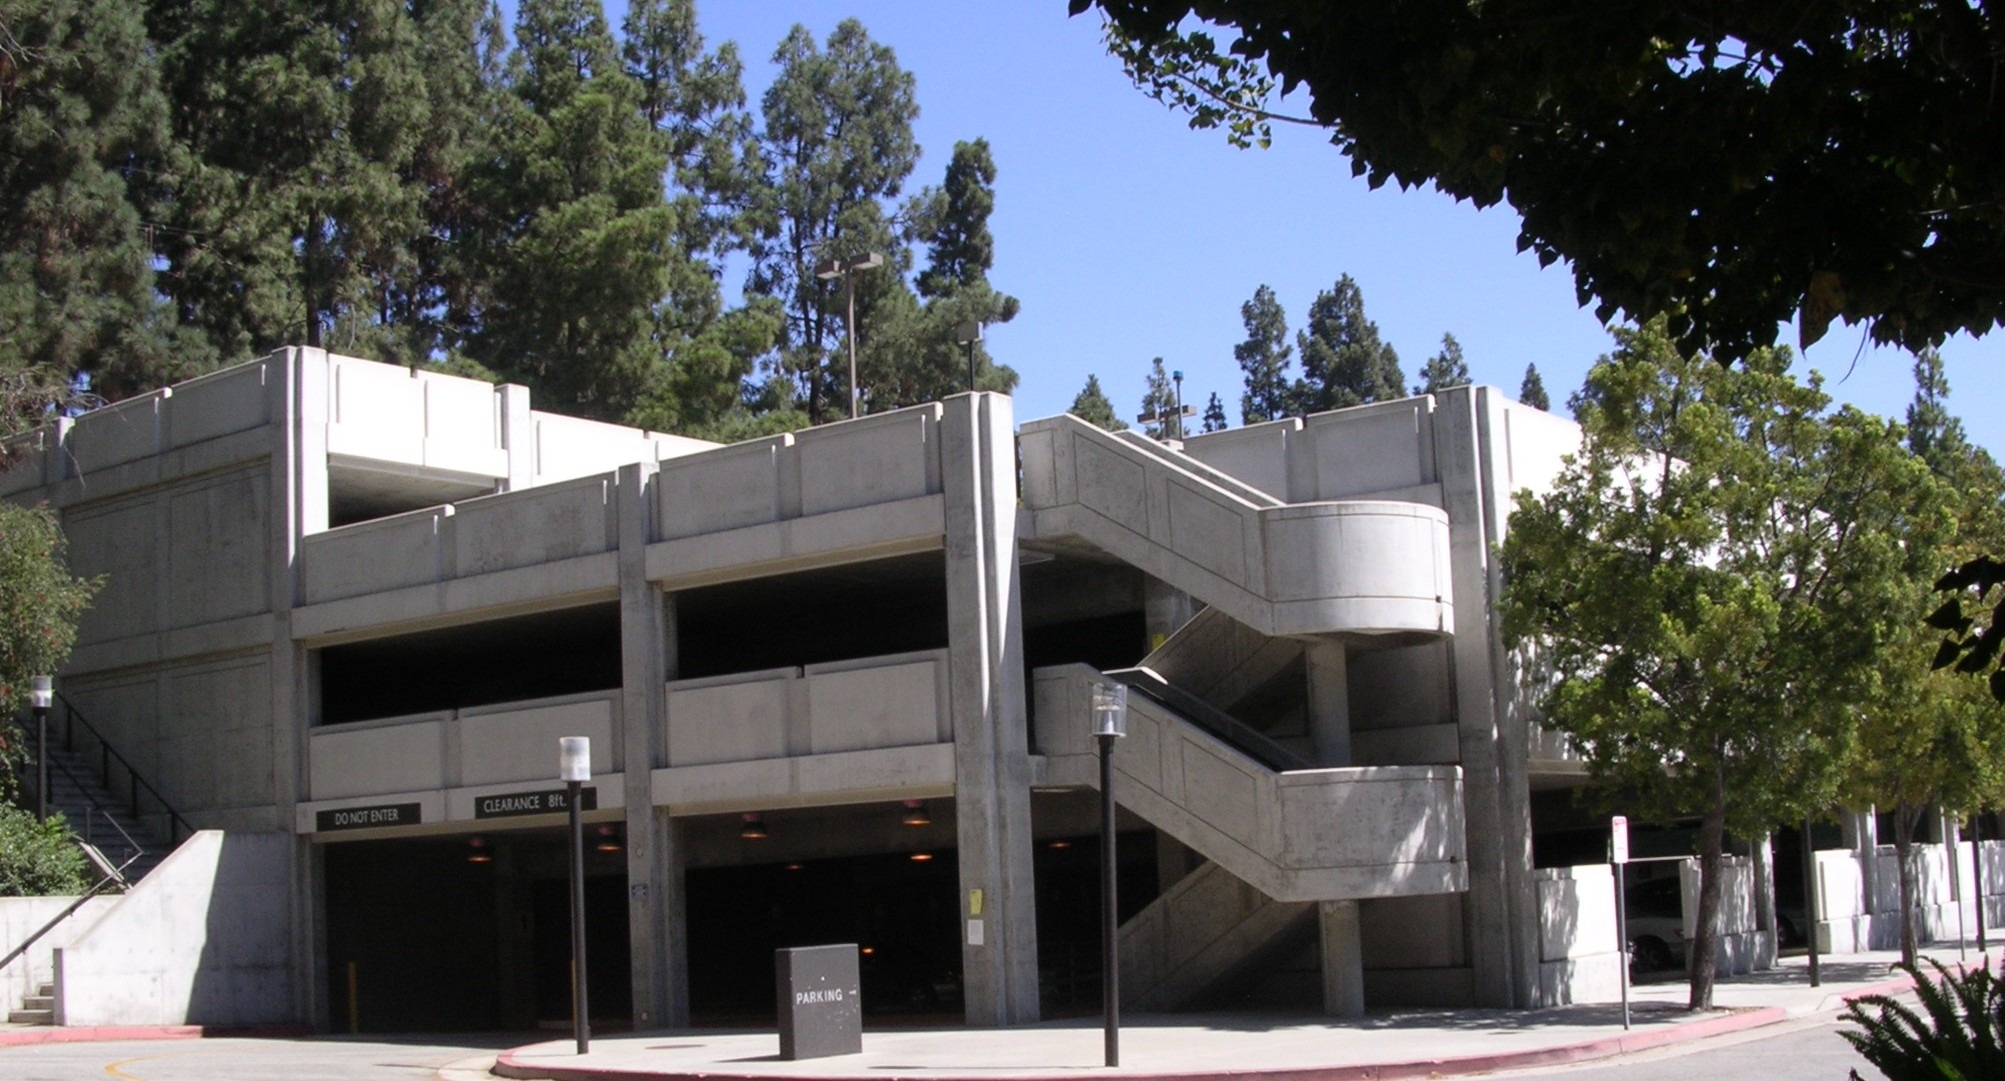 Rs Zoning Code http://space.admin.ucla.edu/space_plsql/pkg_gui.campus?p_loc_id=177